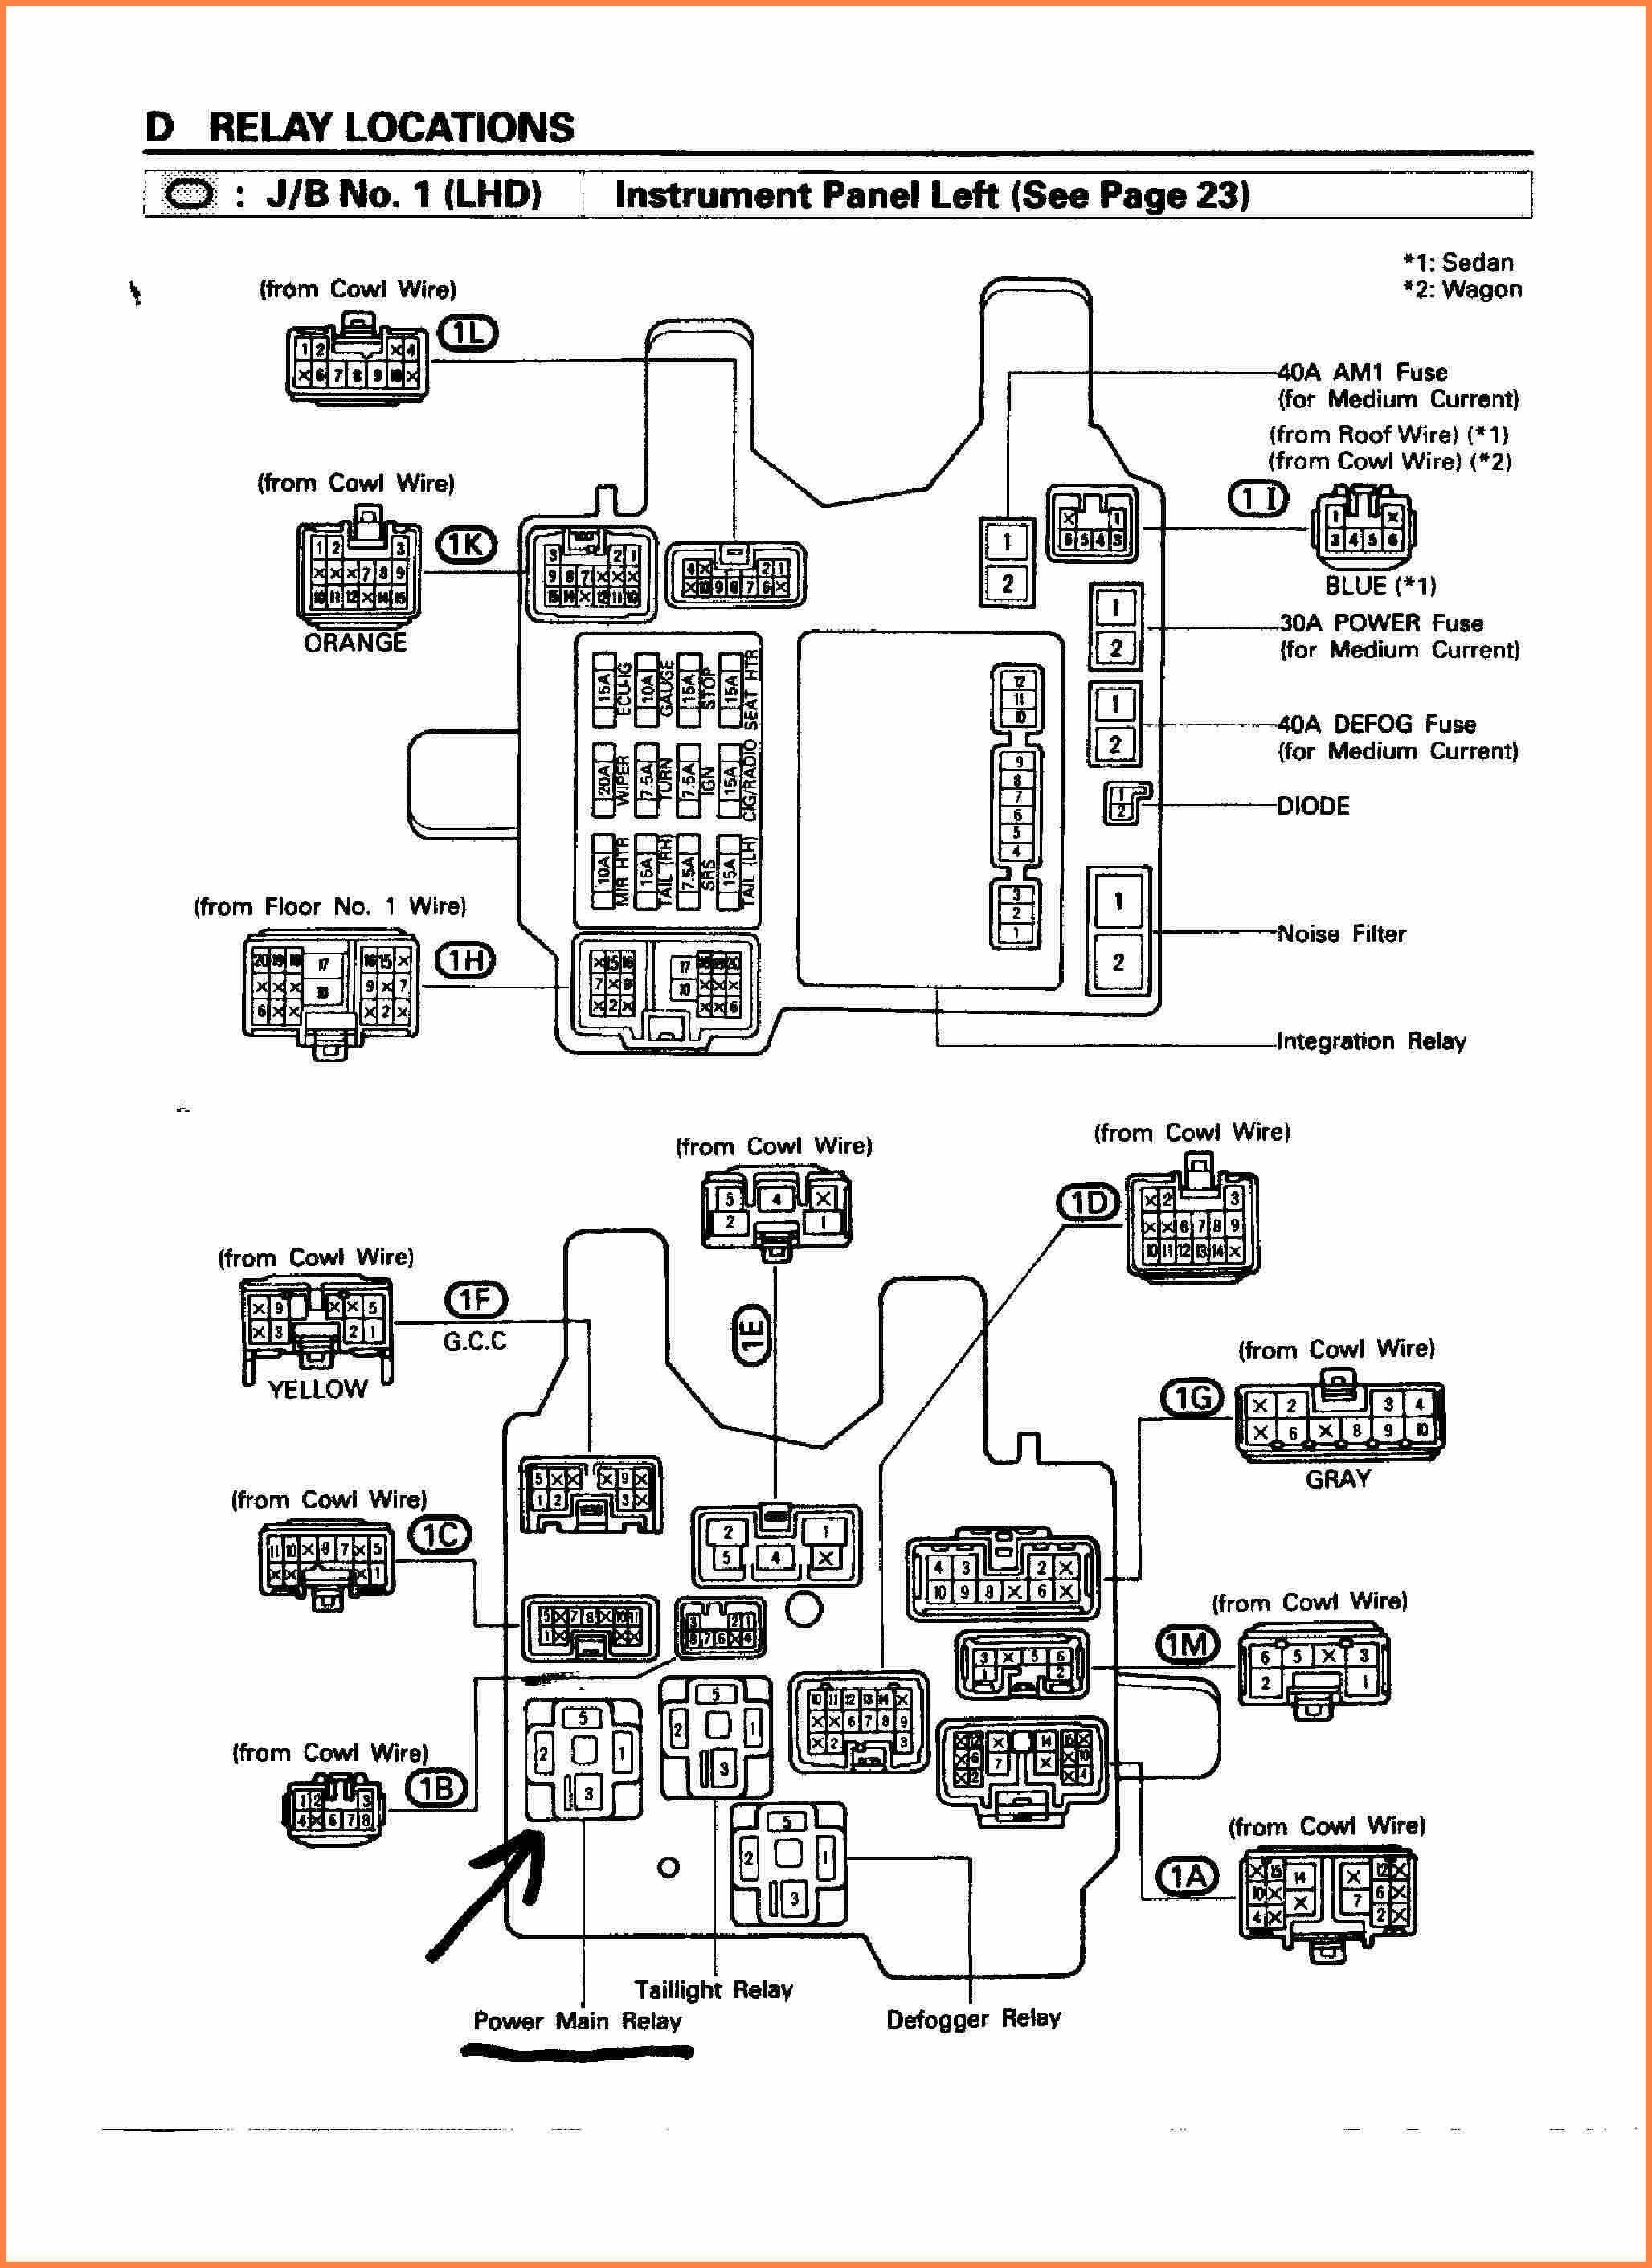 99 Camry Engine Diagram 1994 Camry Le Wiring Diagram Another Blog About Wiring Diagram • Of 99 Camry Engine Diagram 92 toyota Camry Stereo Wiring Another Blog About Wiring Diagram •